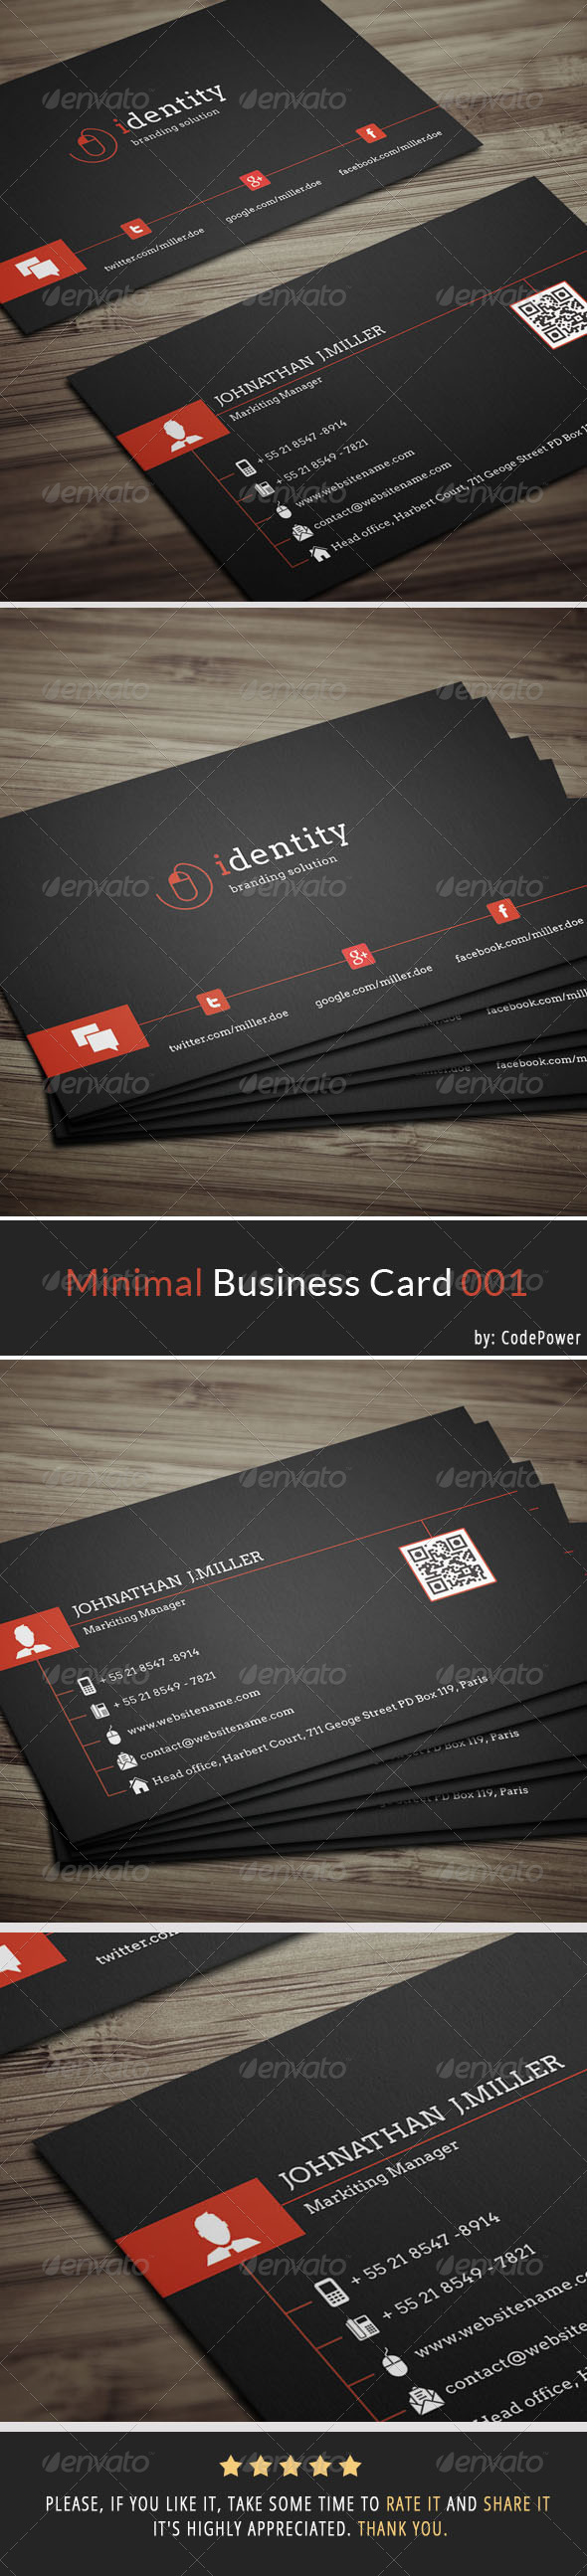 GraphicRiver Minimal Business Card 001 7194217